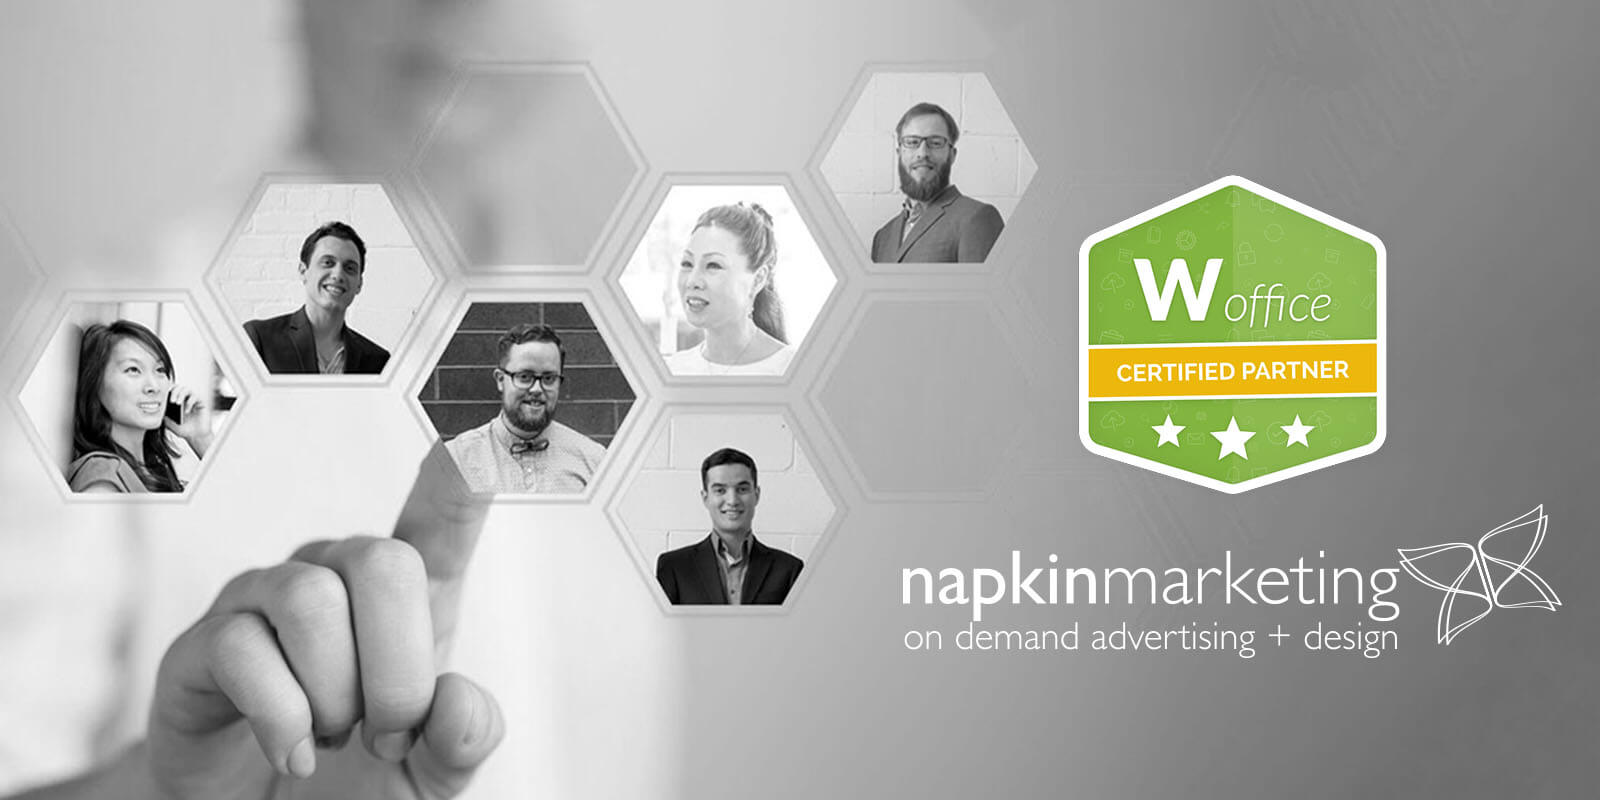 napkin marketing announces new partnership with Woffice – world's leading wordpress intranet provider